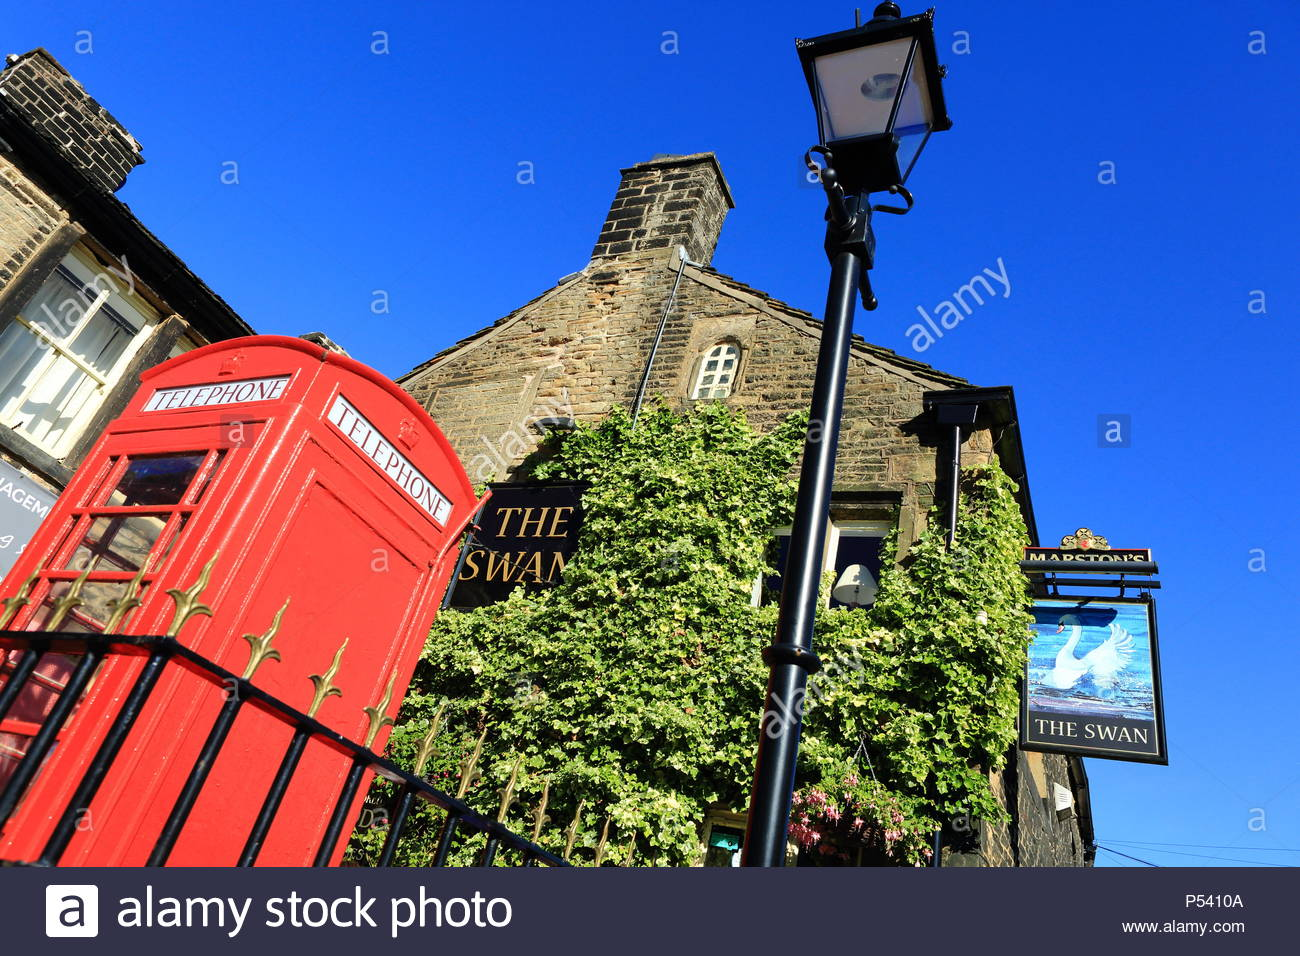 The Swan Pub Under A Beautiful Summer Sky In The Quirky Village Of Dobcross, Saddleworth, Oldham, England, Summer June 2018 - Stock Image